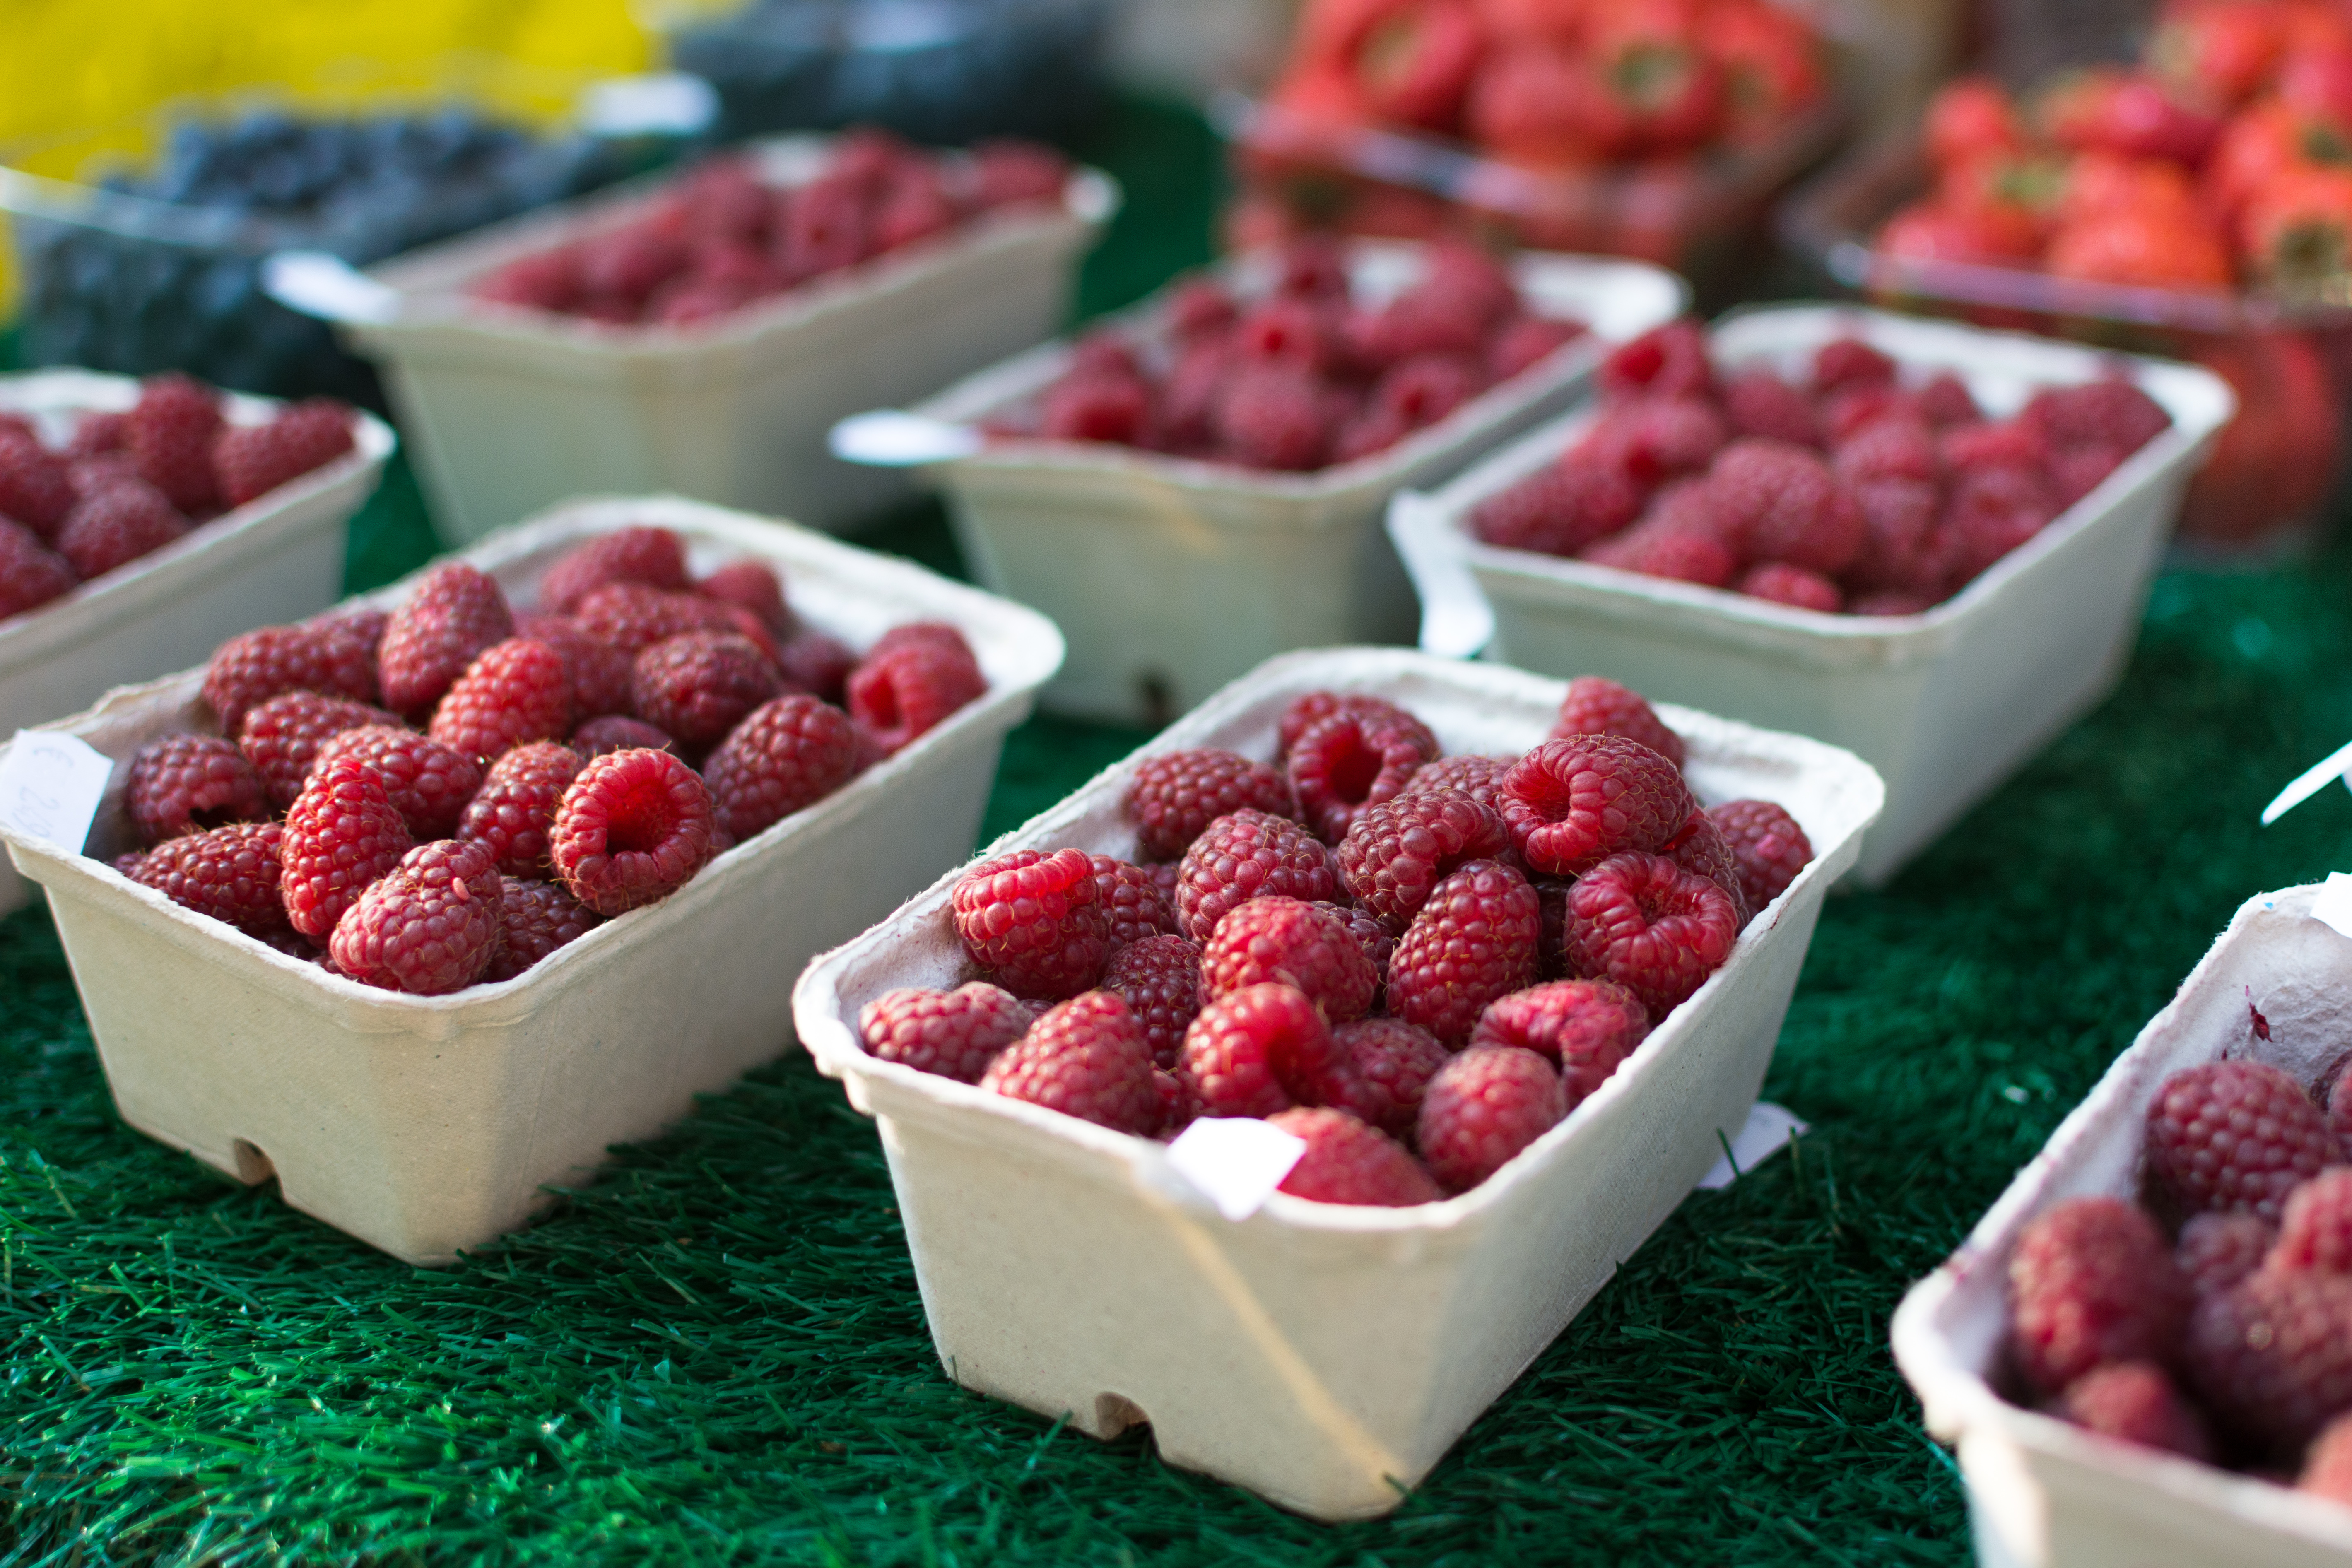 Raspberries at a market